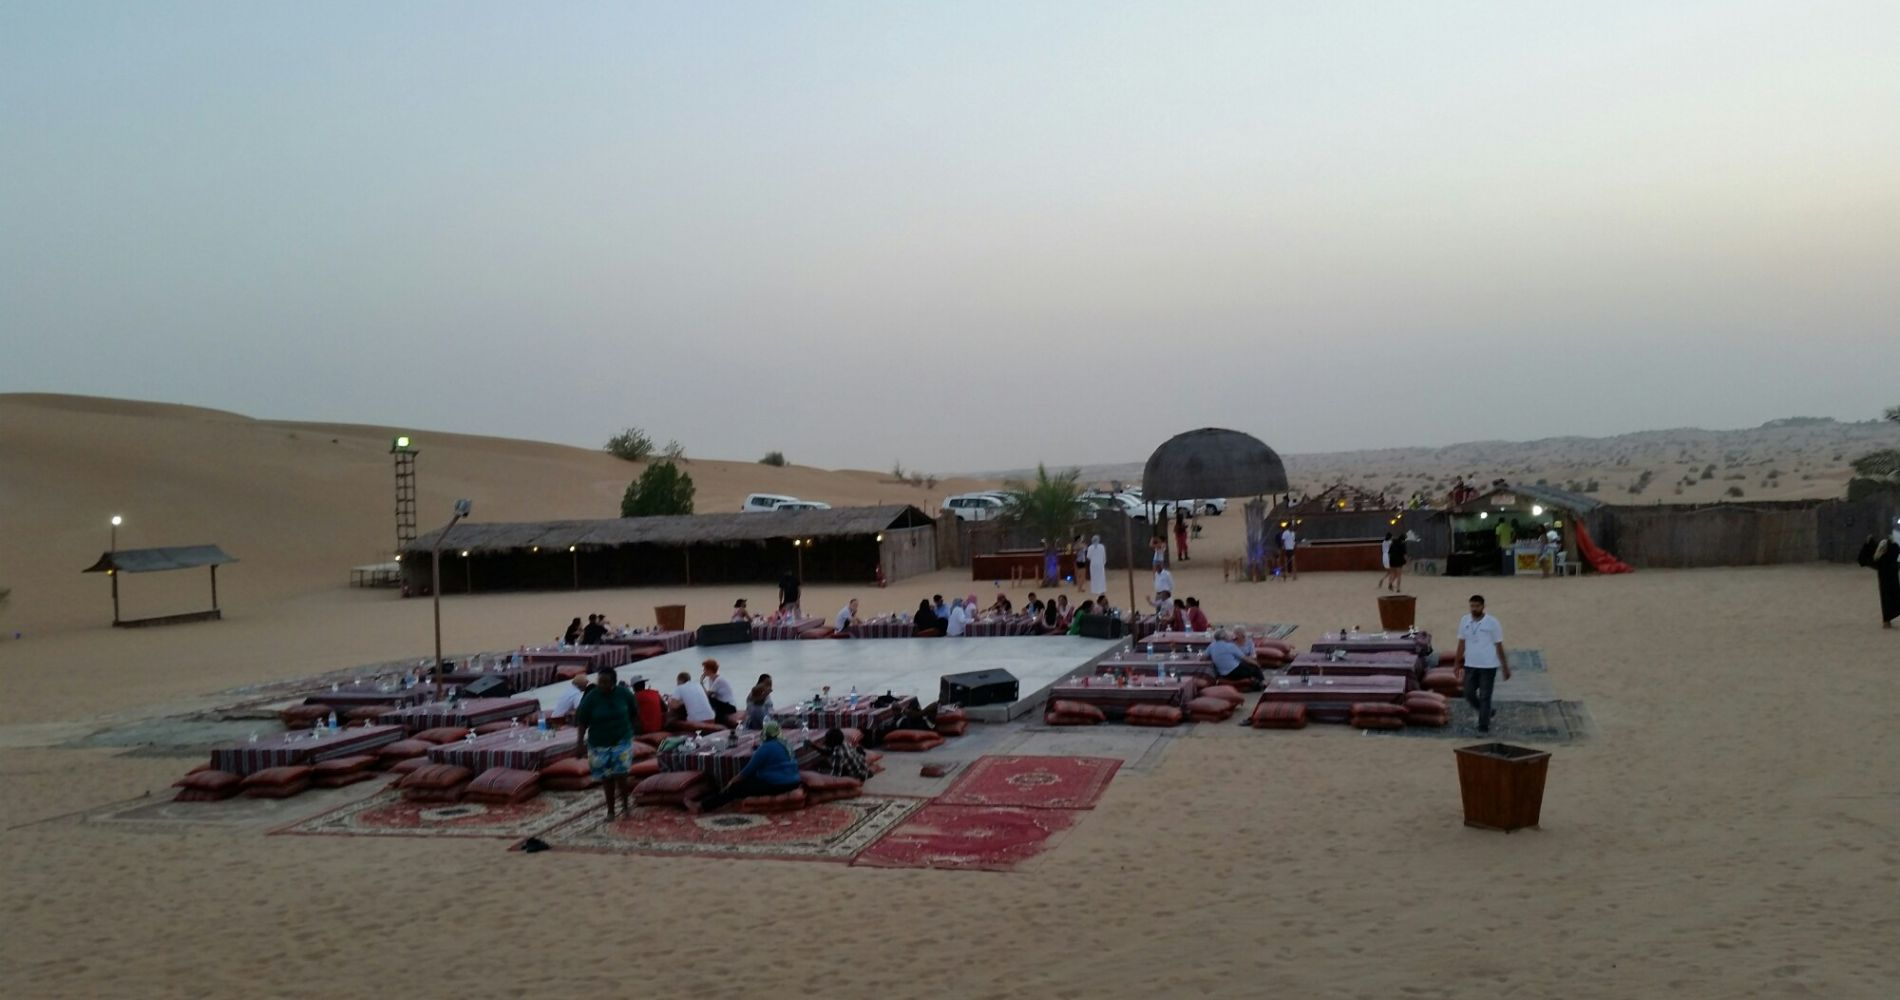 Desert Safari Adventure Barbecue Dinner Dubai Safari Tinggly Experience Gift